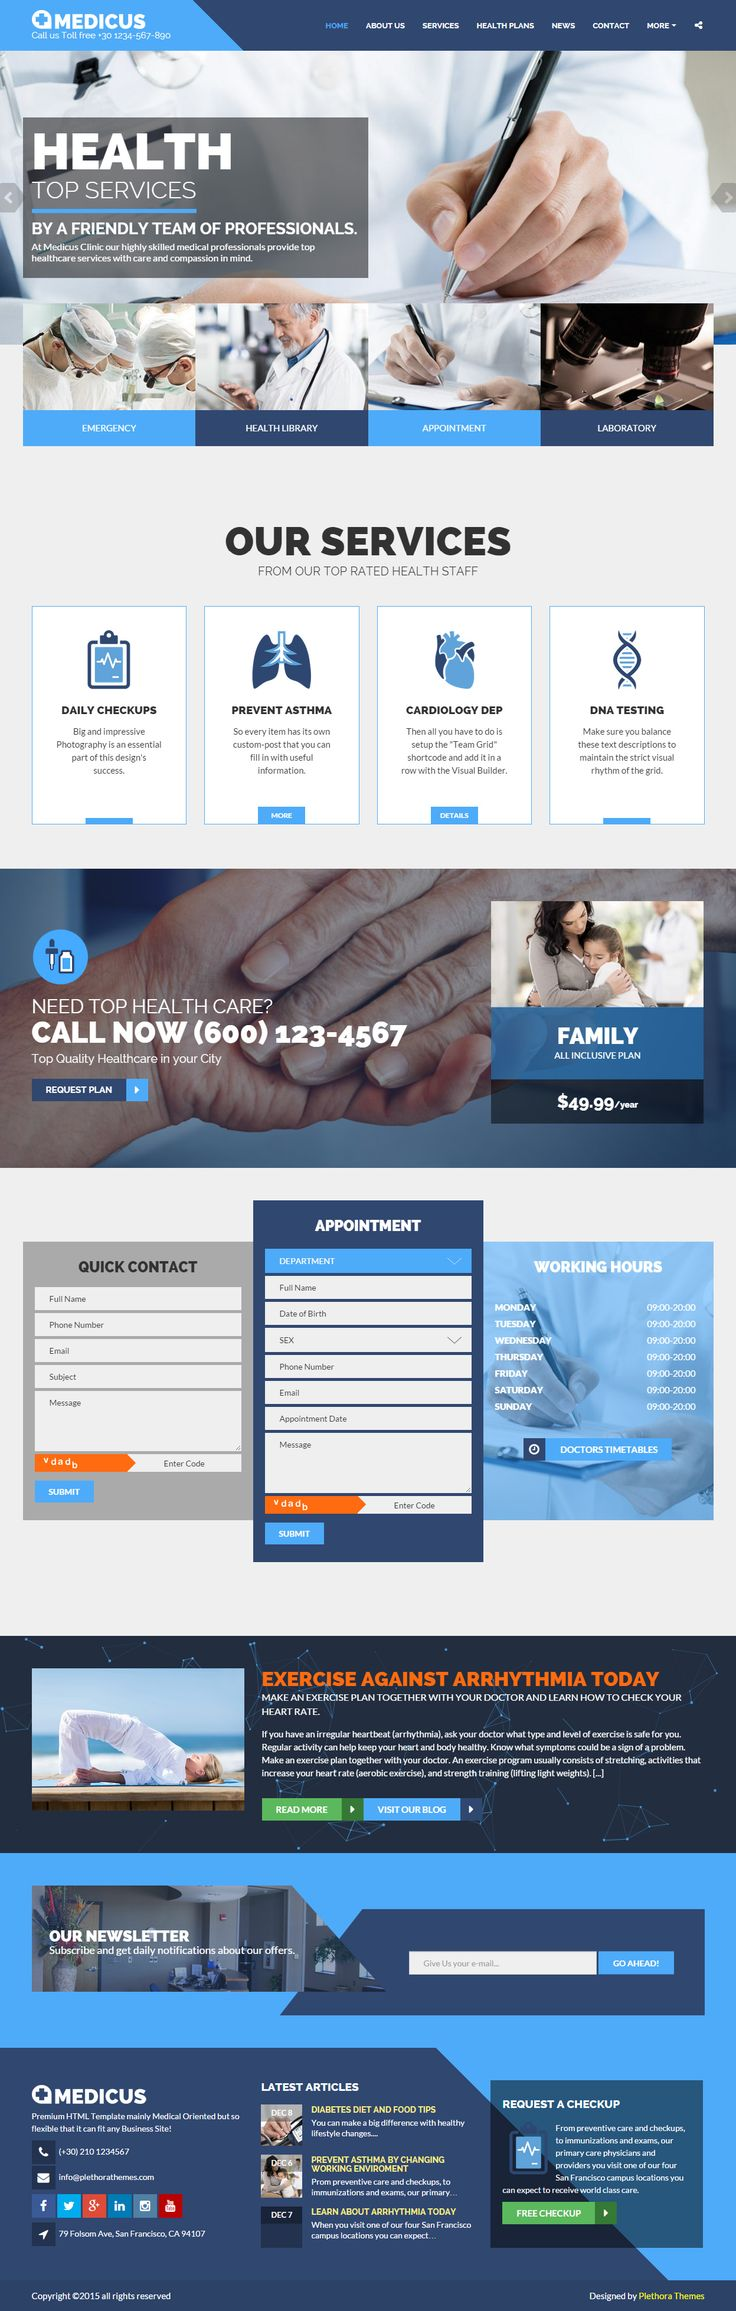 html5 parallax scrolling template free - best 25 medical brochure ideas on pinterest book